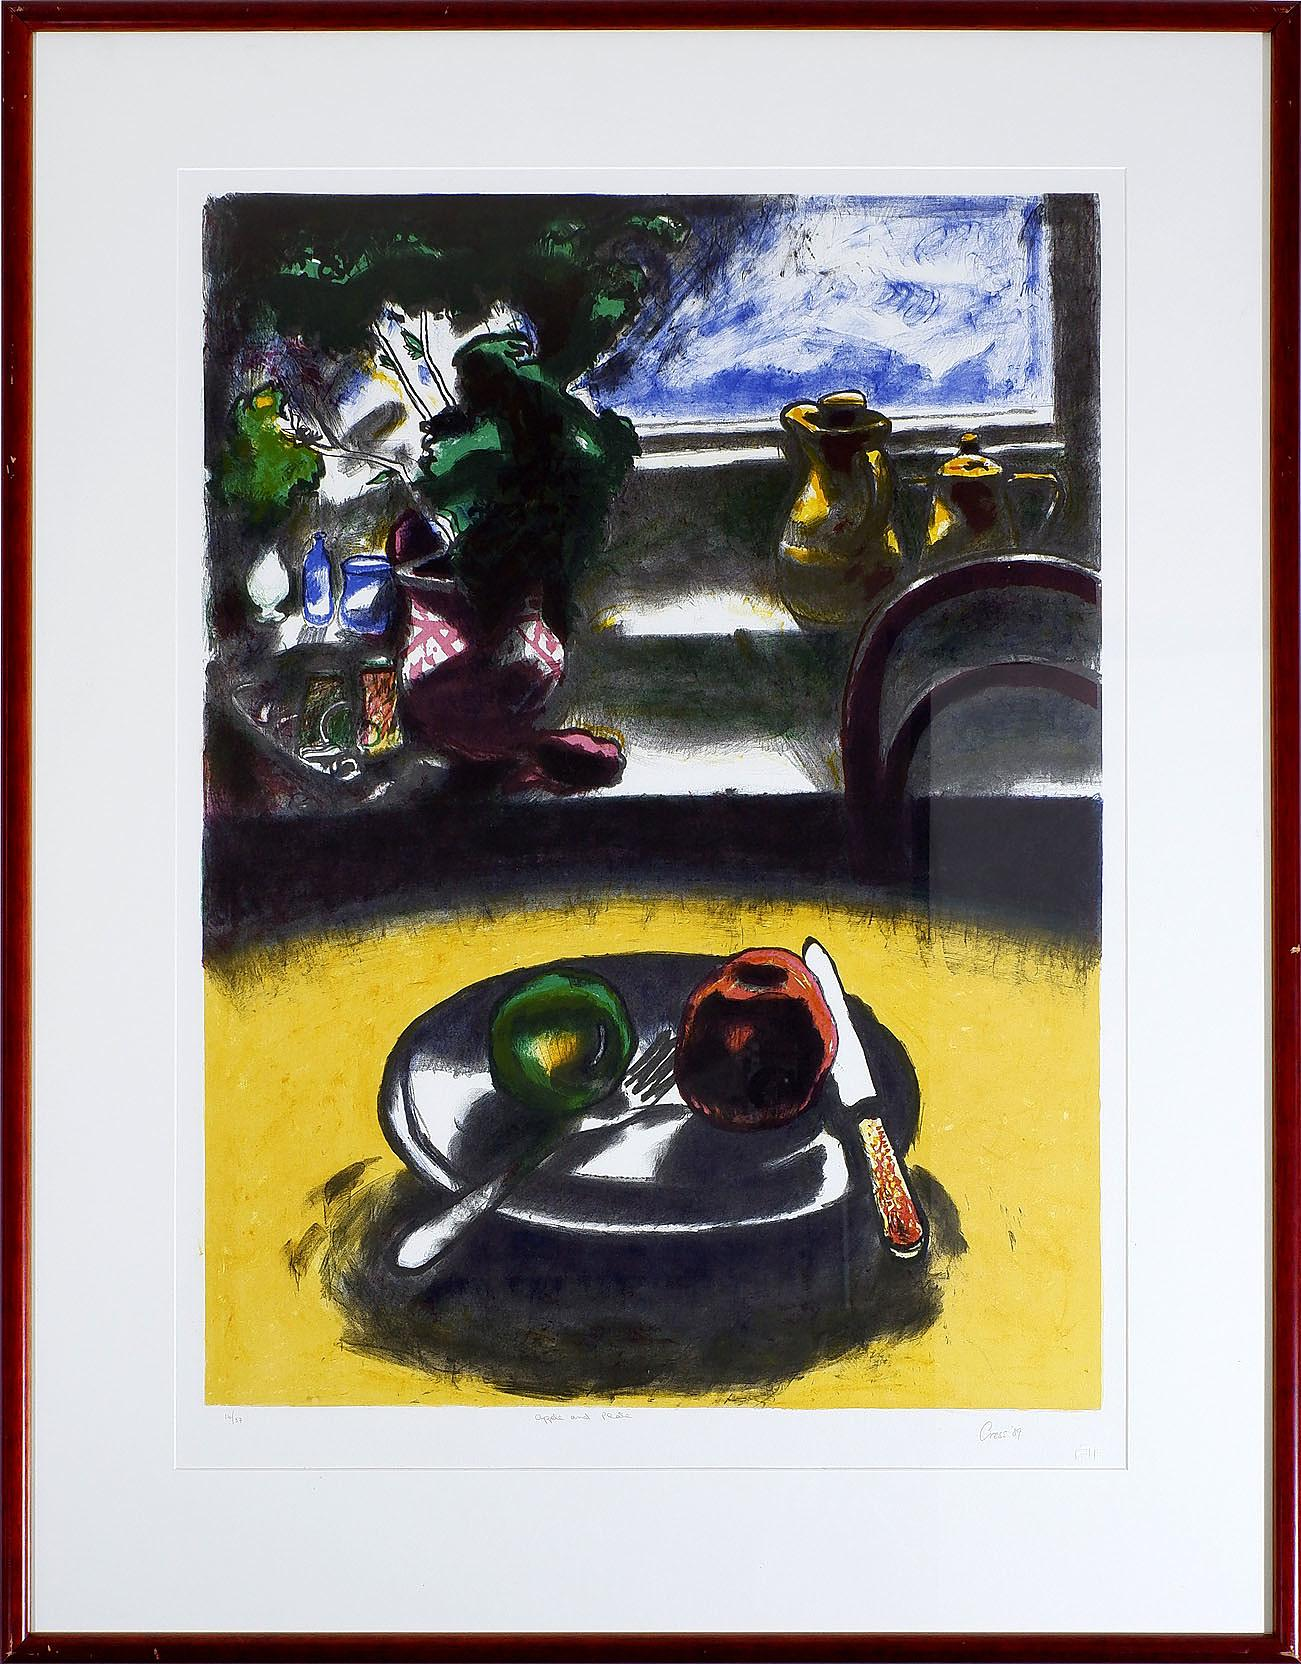 'Fred Cress (1938-2009), Apple and Plate, Colour Lithograph'